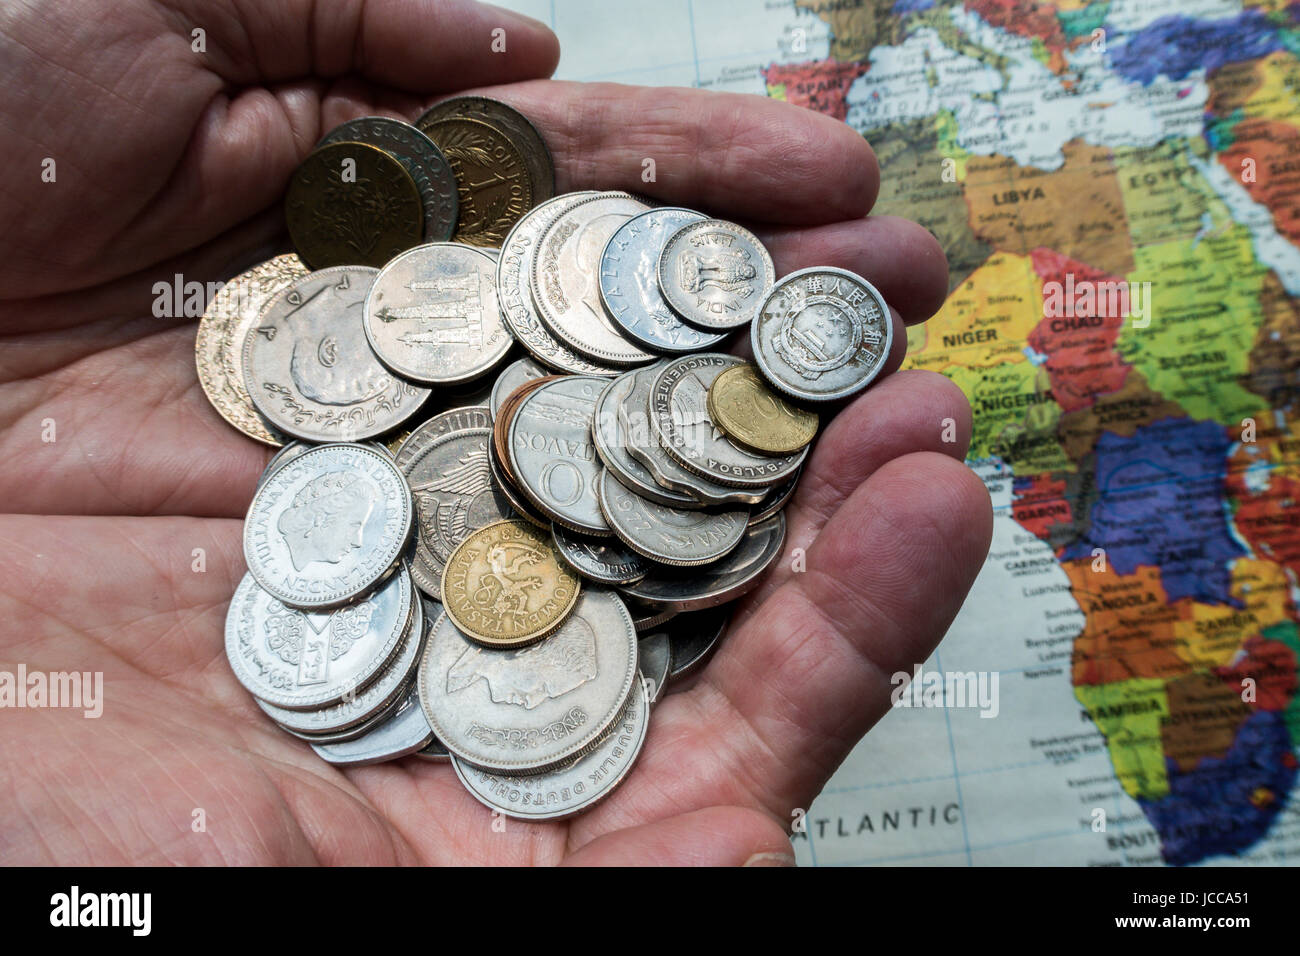 Hands Holding Multiple International Coins - Stock Image